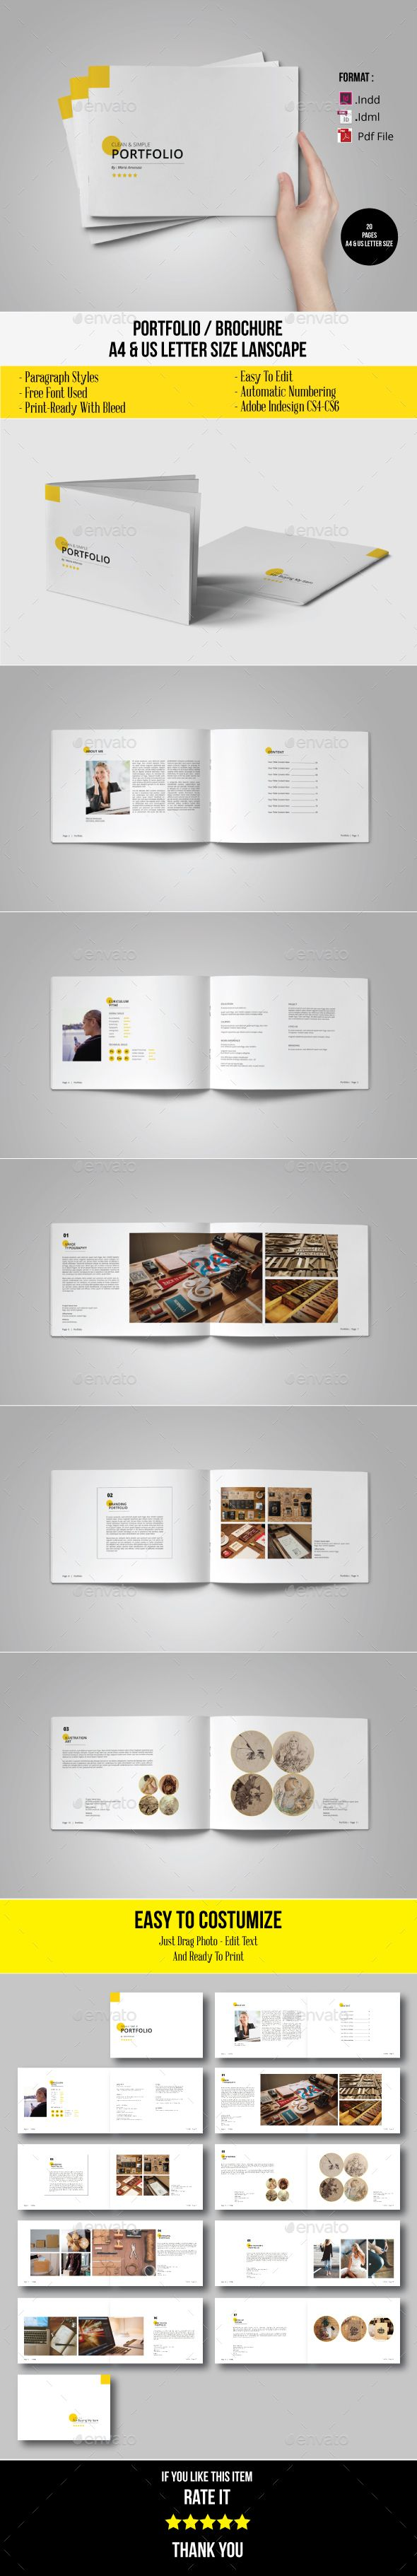 Minimal Brochure / Portfolio / Catalogue Template InDesign INDD. Download here: http://graphicriver.net/item/minimal-brochure-portfolio-catalogue/16211802?ref=ksioks